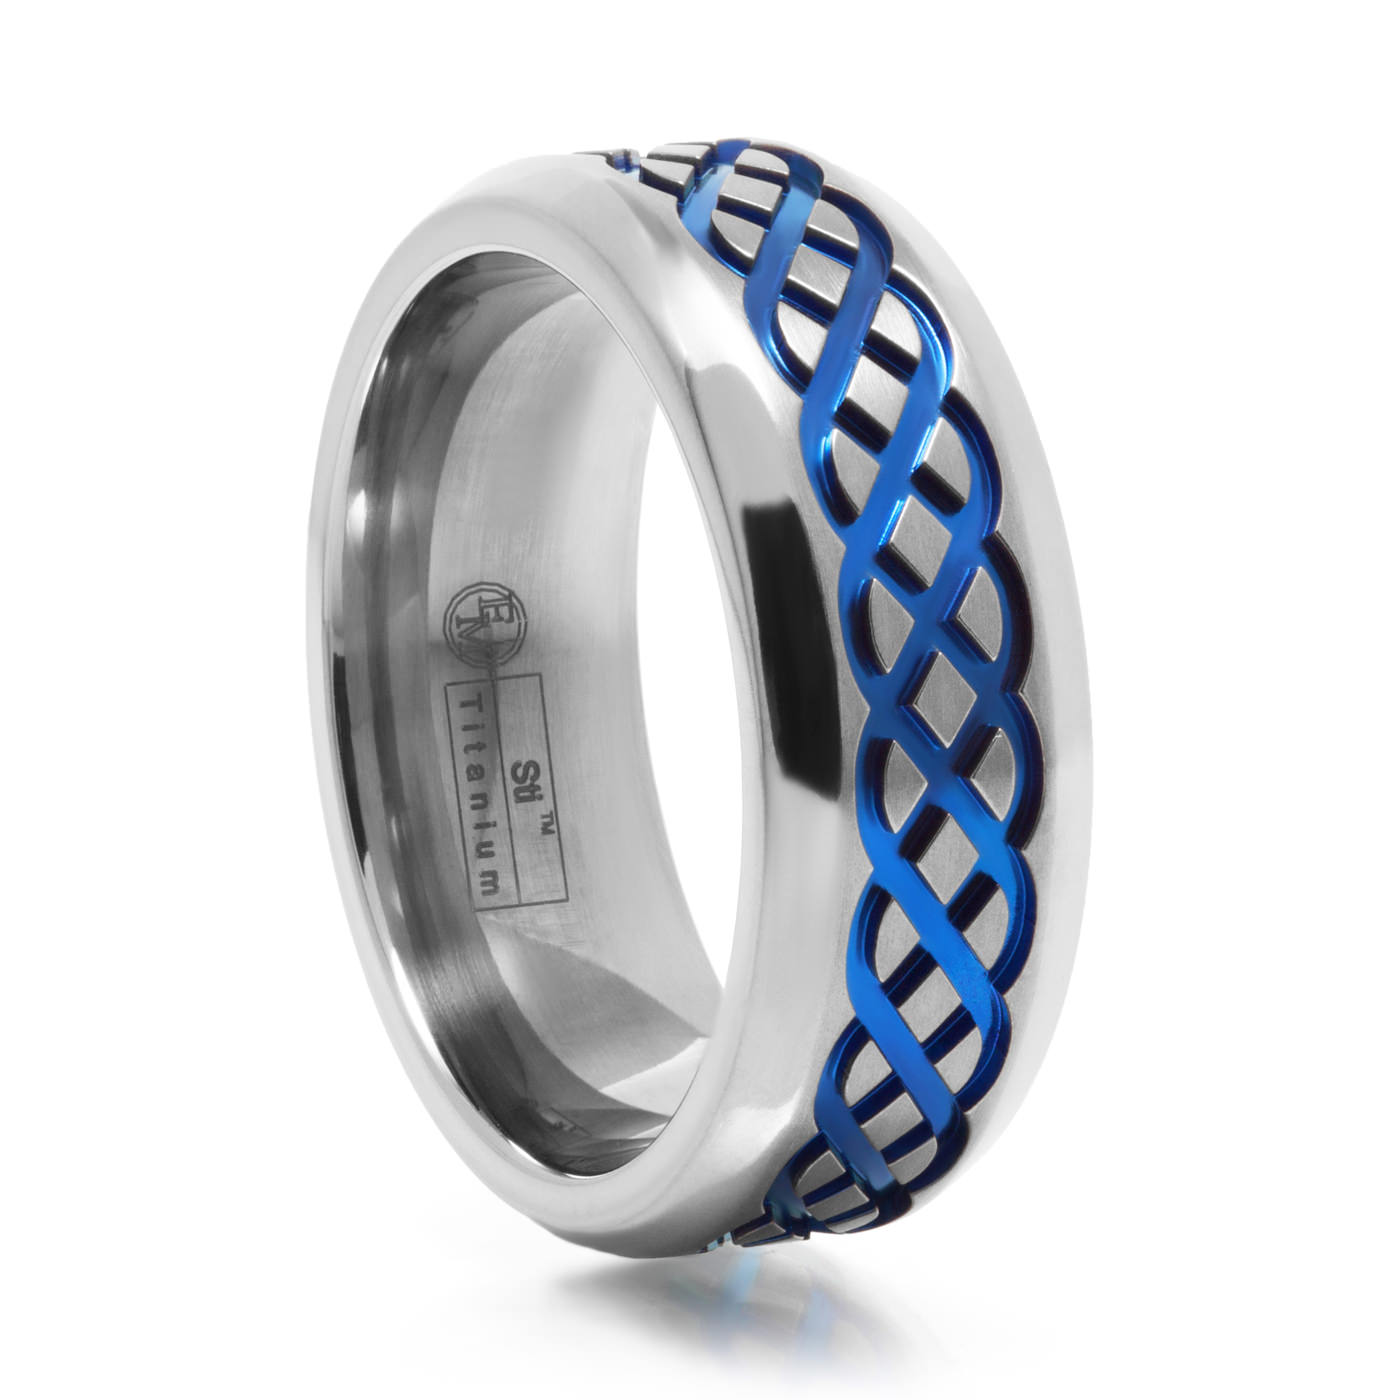 rings s stainless steel fibre in with mens carbon blue men black ring